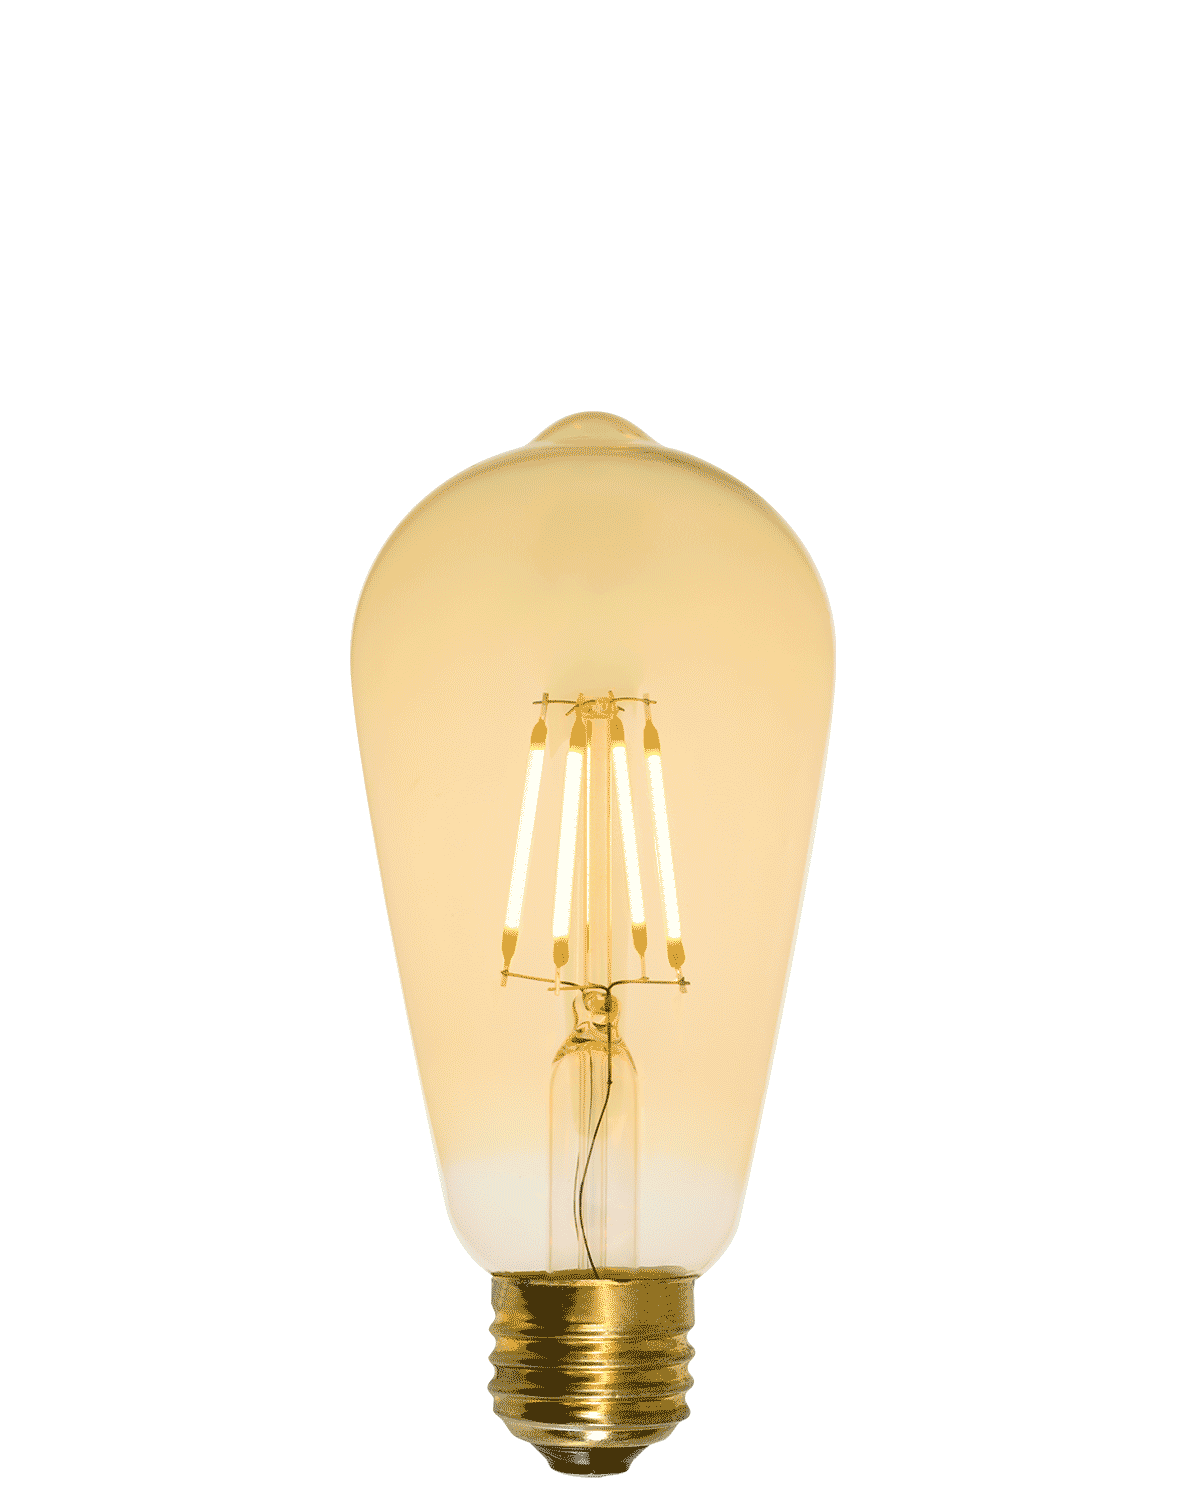 Bulb: LED - Edison Hangout Lighting